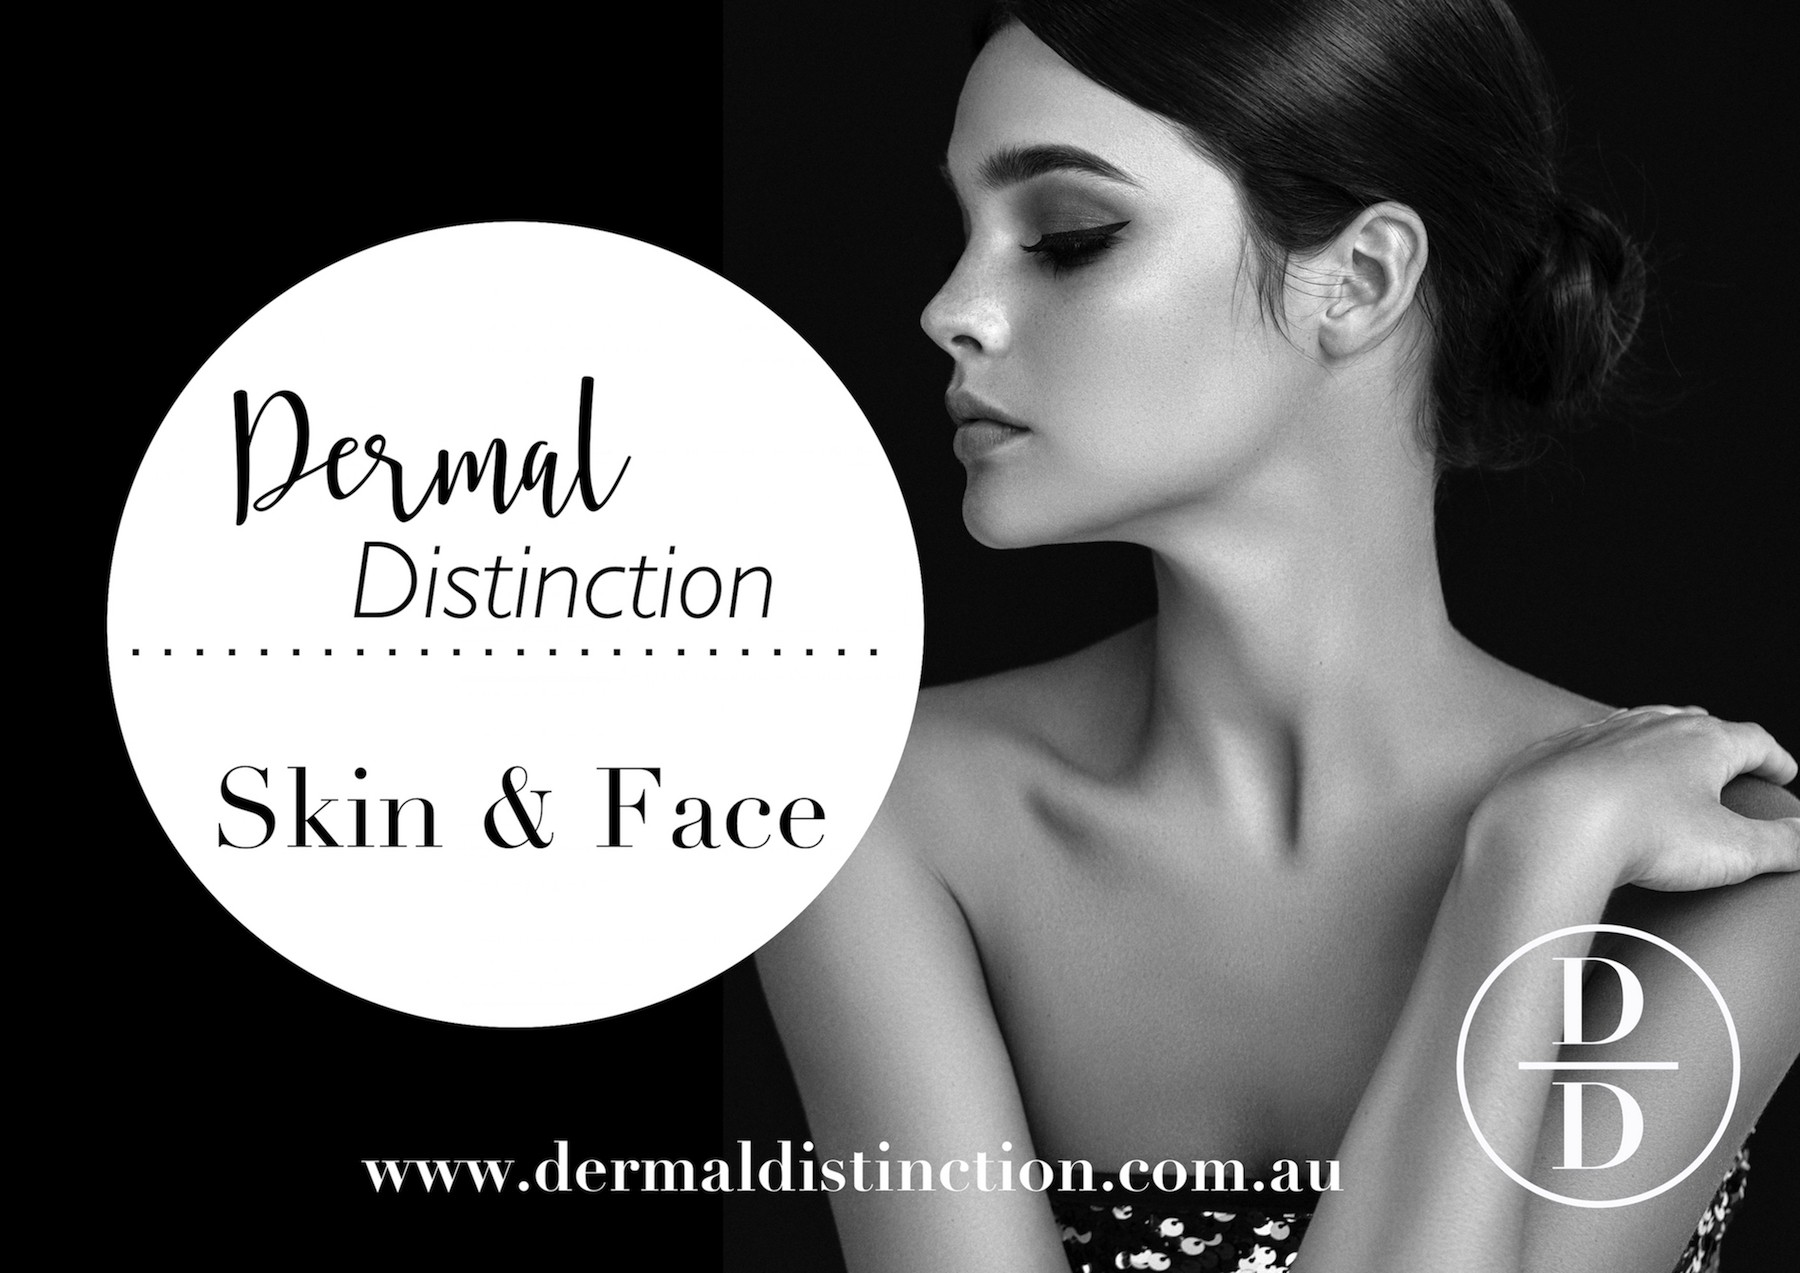 Dermal Distinction